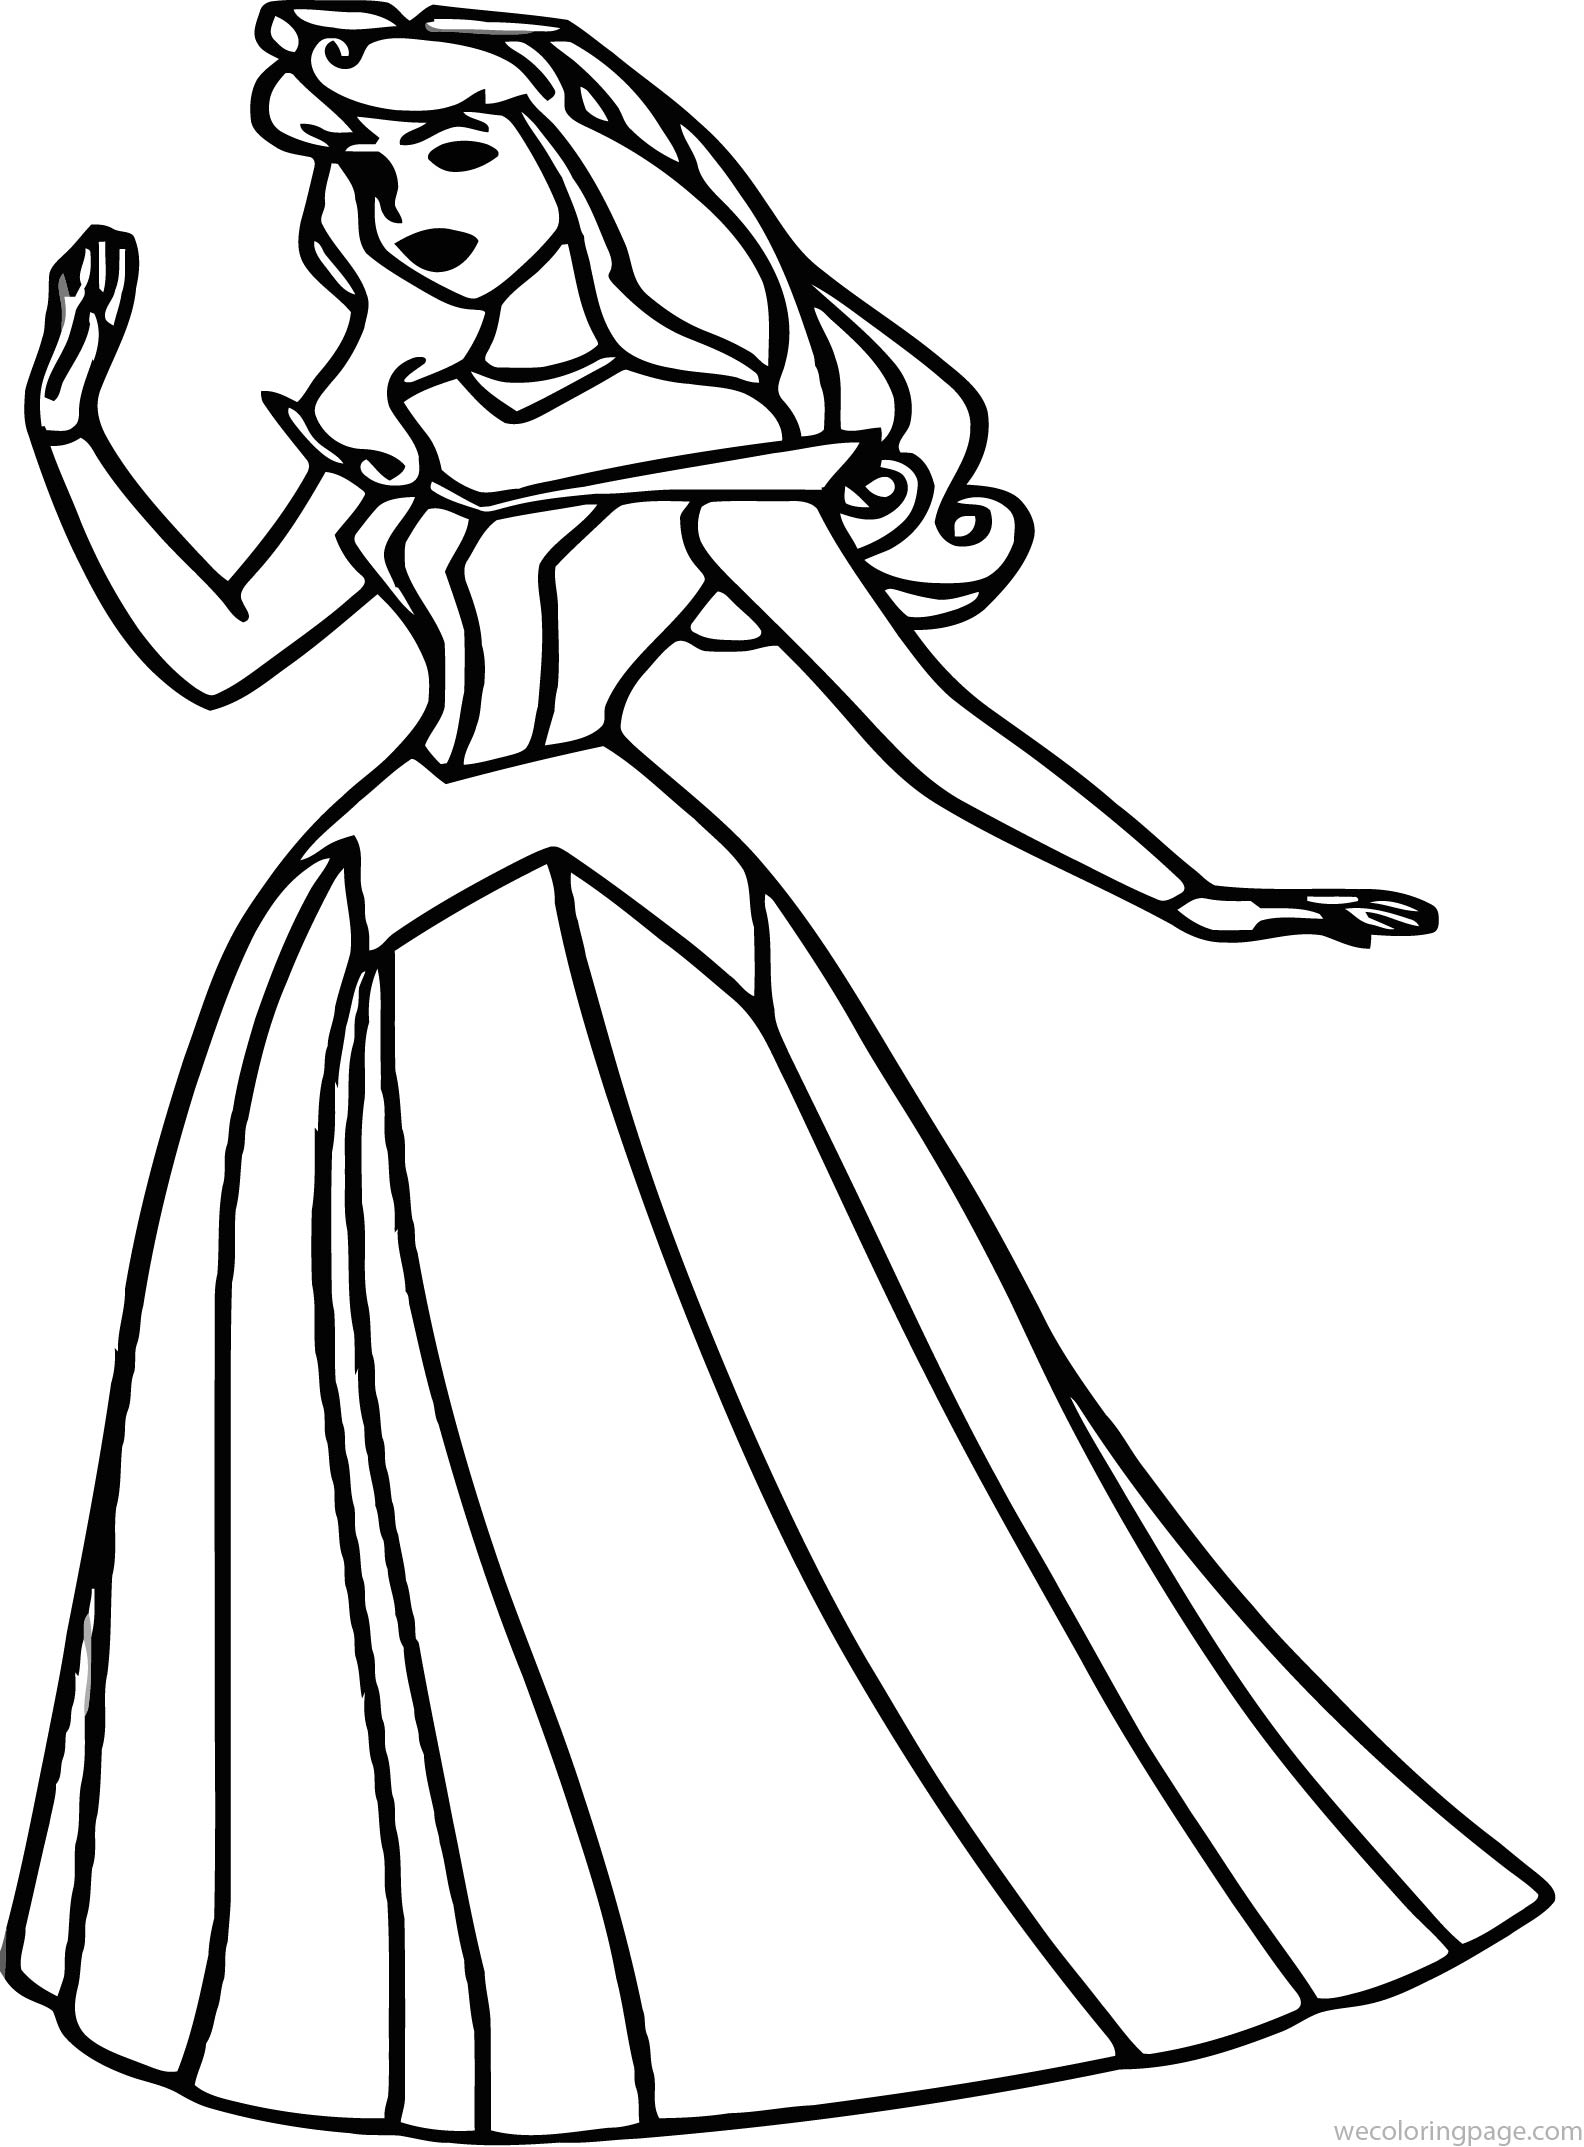 Disney Aurora Sleeping Beauty At Coloring Pages 20